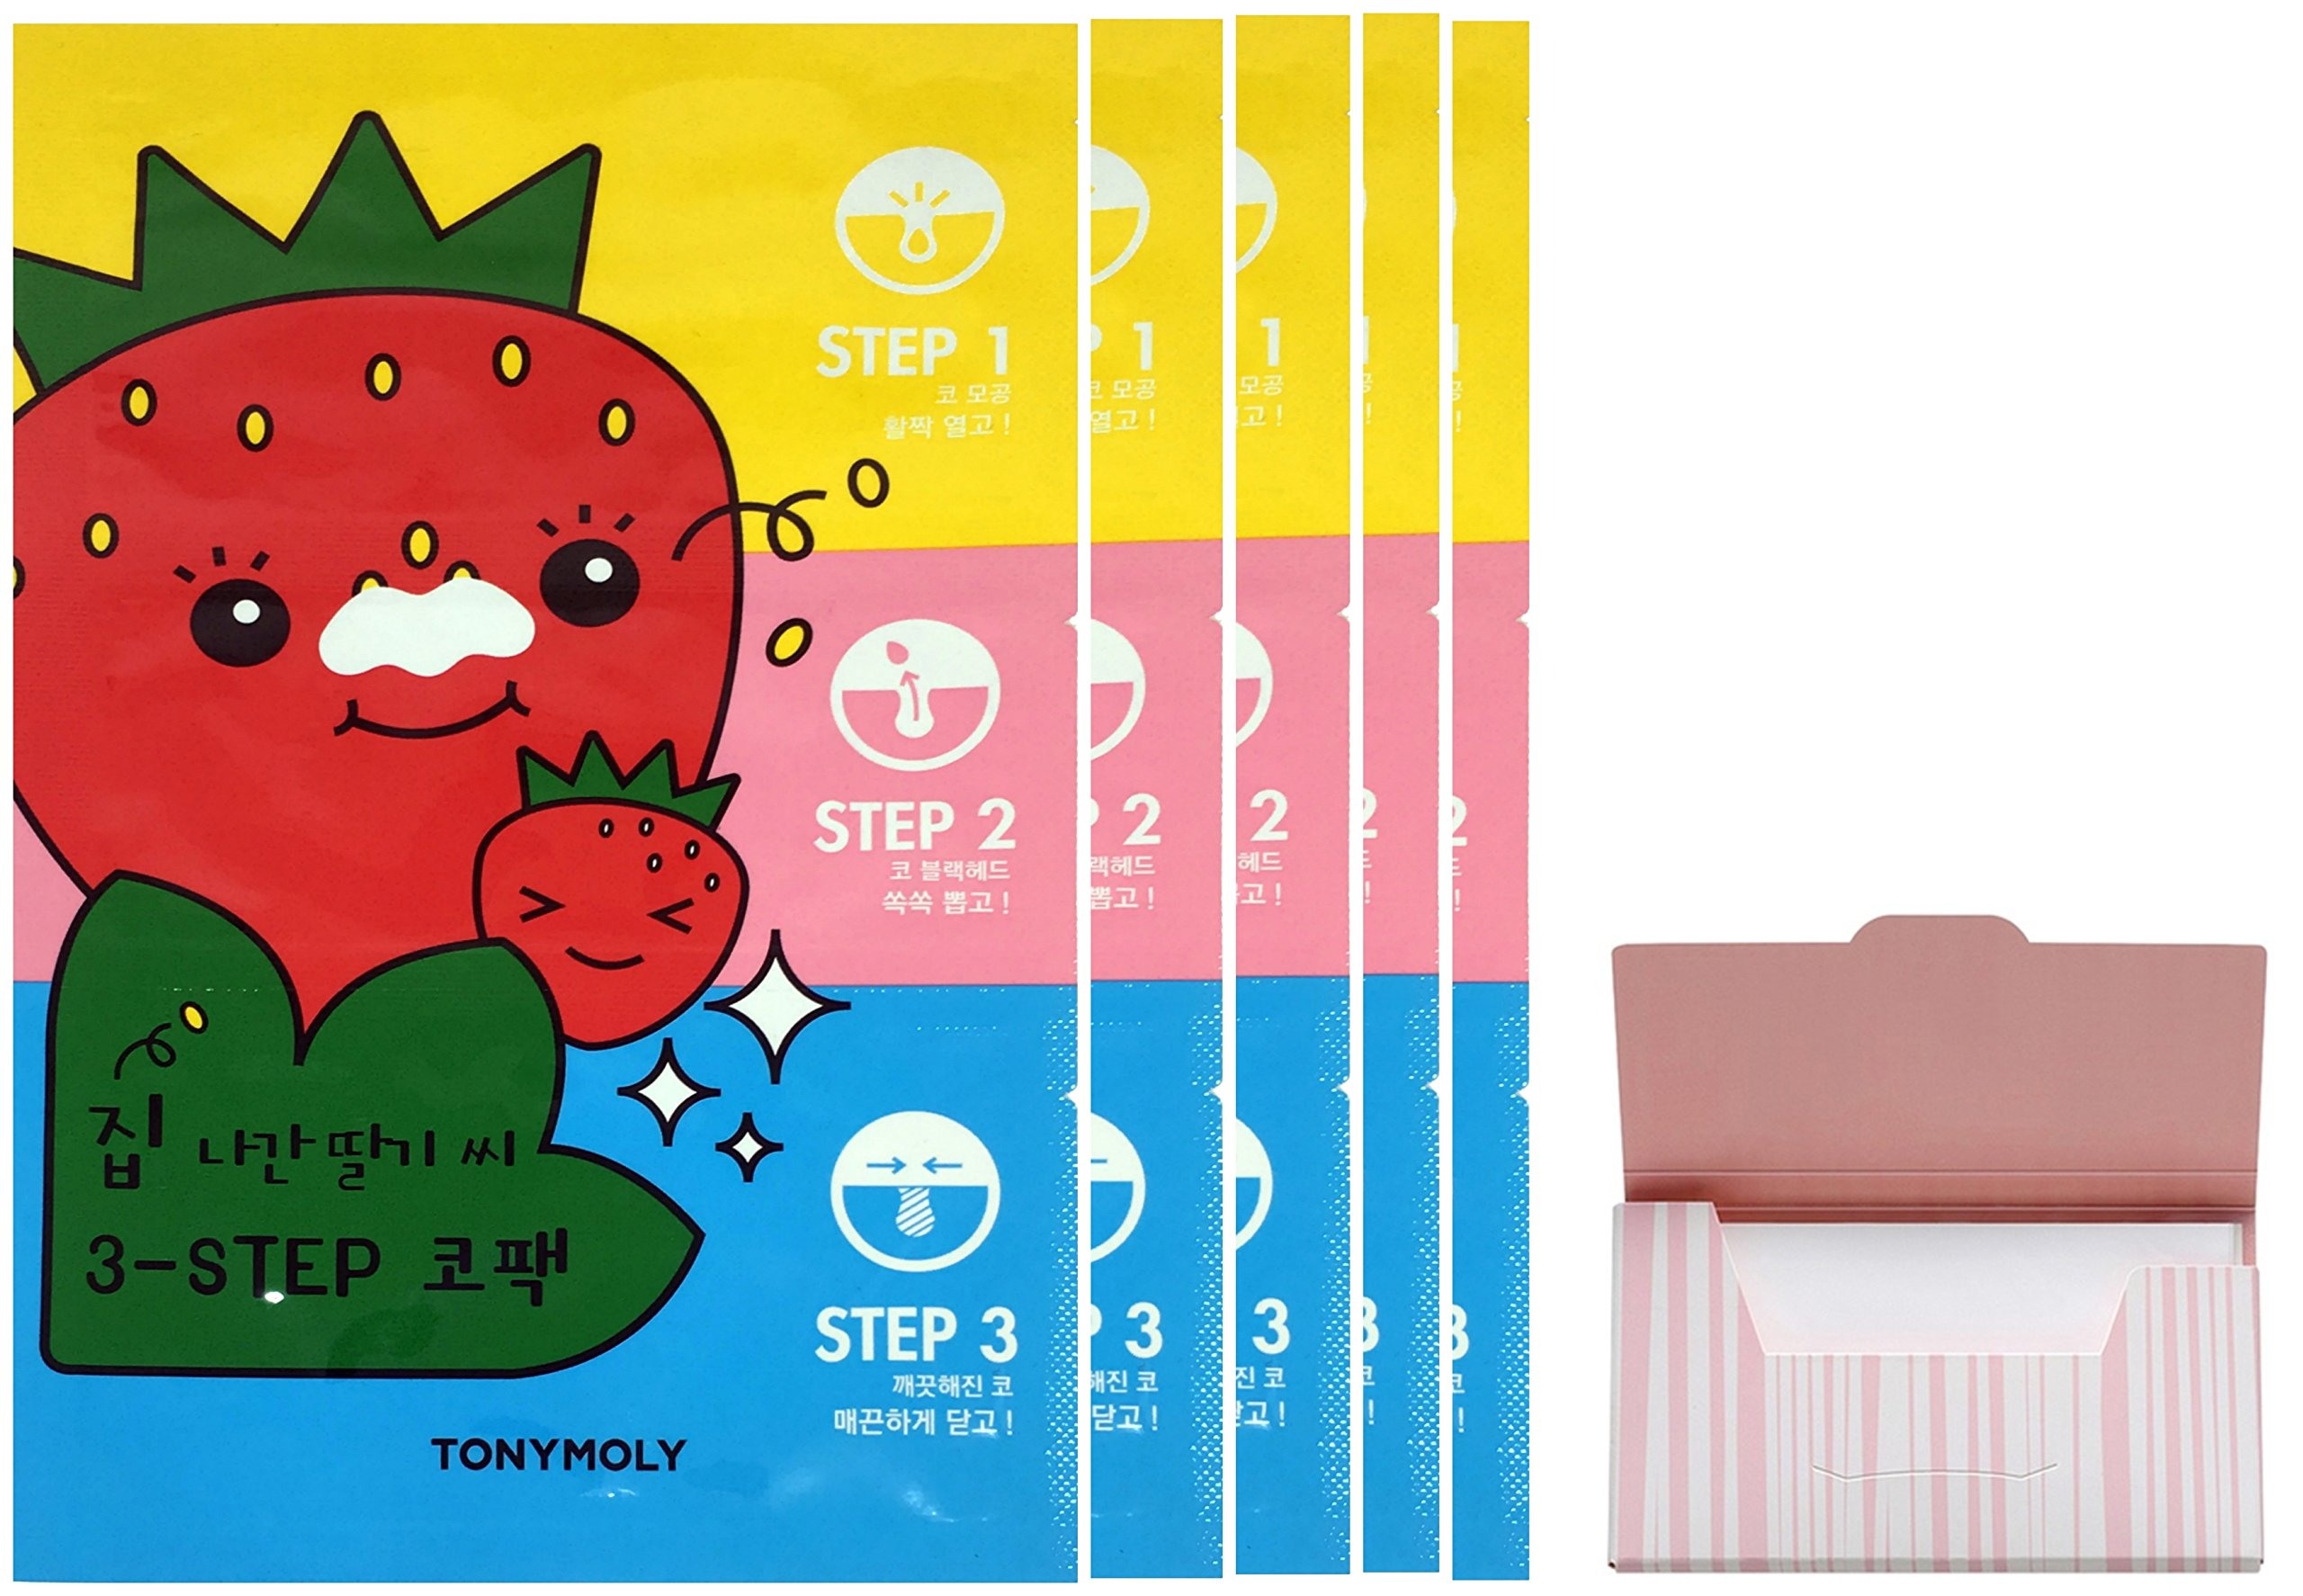 Seedless Strawberry Seeds 3-step Nose Pack 5 Set Bundle with Oil Blotting Paper